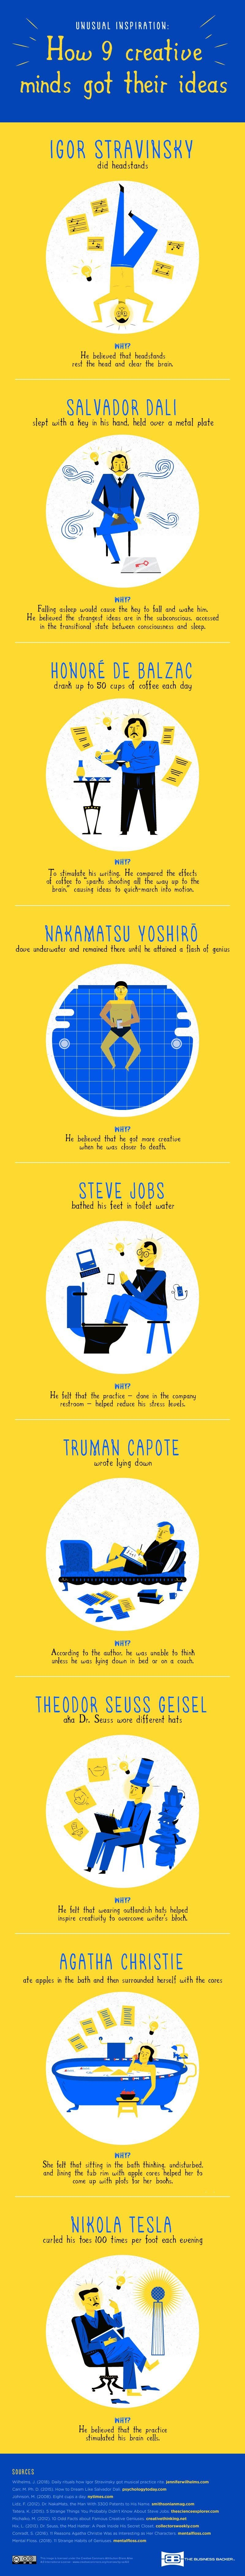 Unusual Inspiration: Here's how some successful and creative people got their ideas